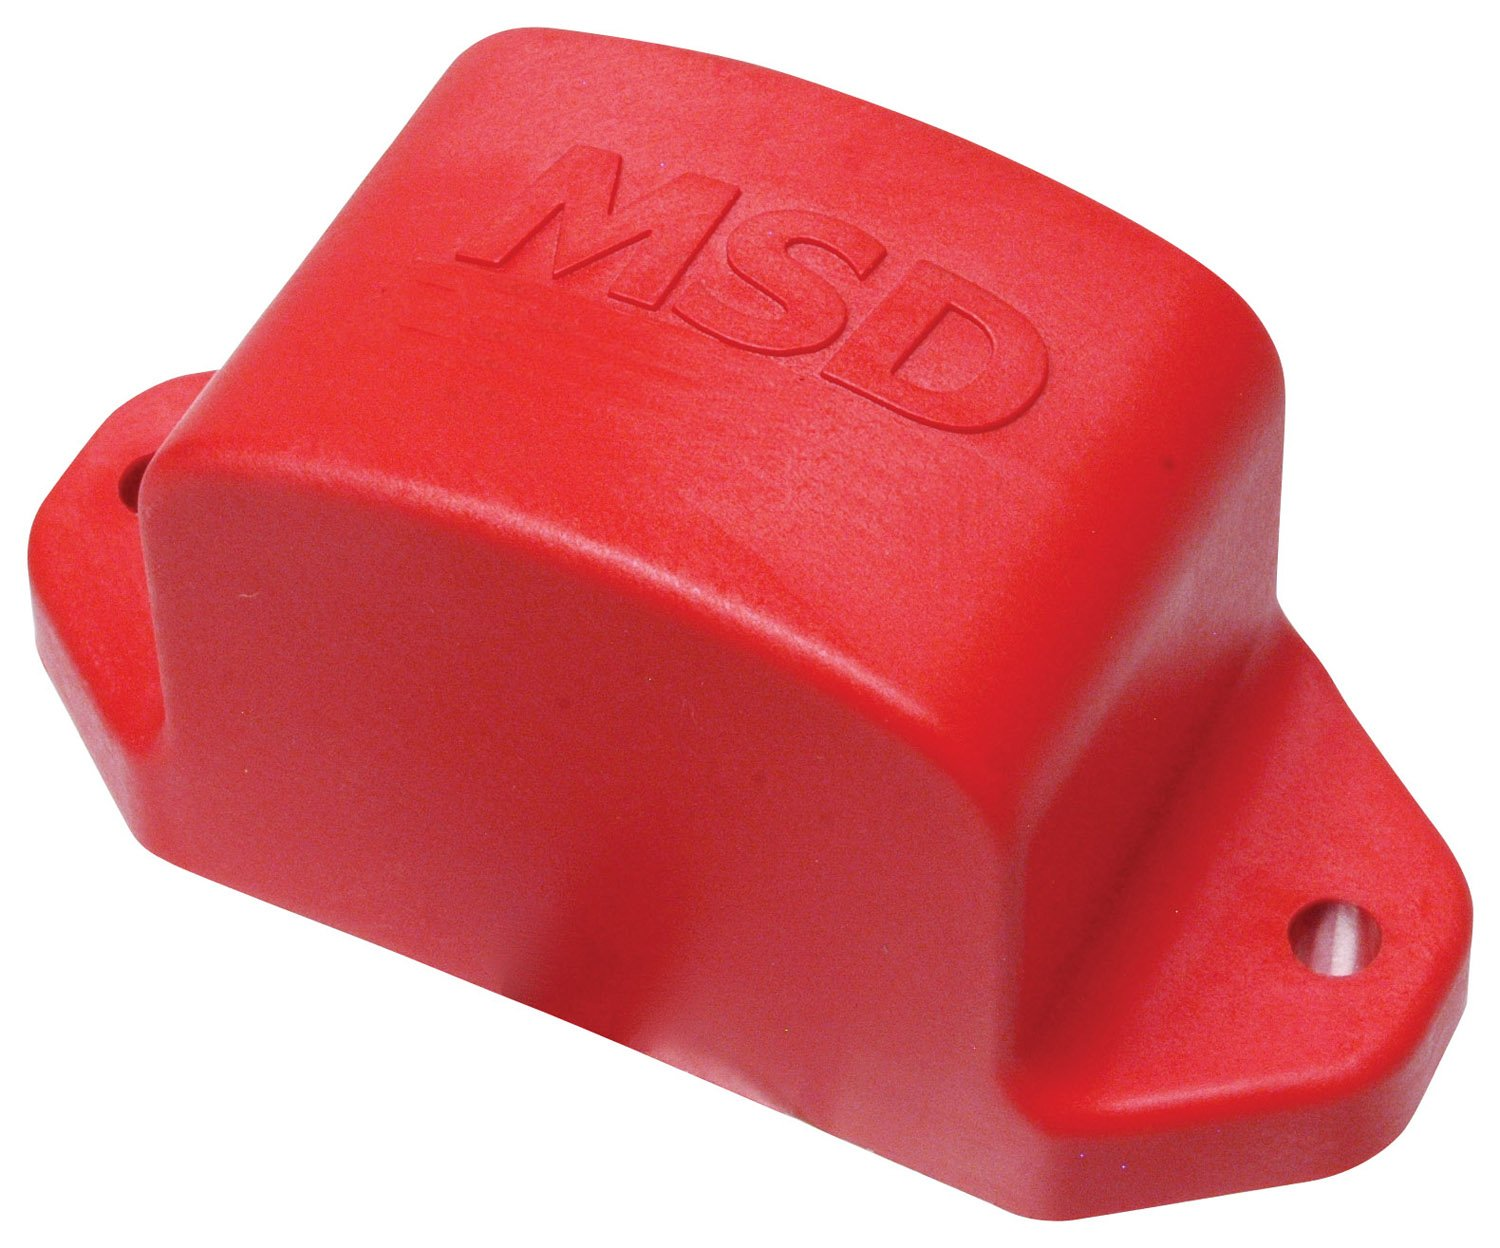 tach adapters msd performance products tech support  tach adapter